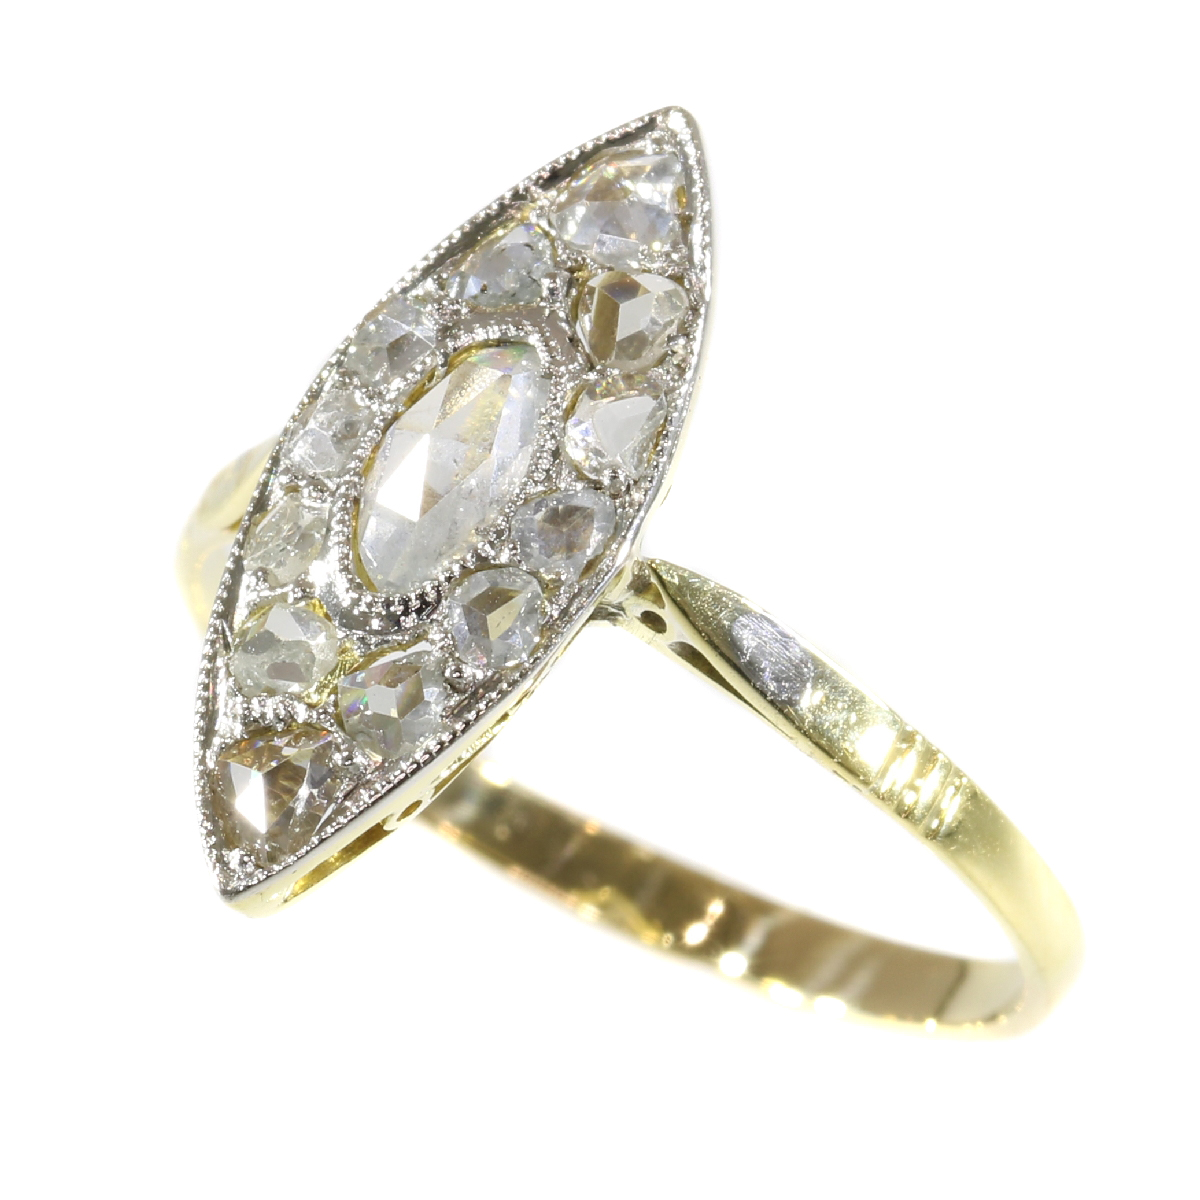 Vintage Art Deco navette or boat shaped ring with rose cut diamonds